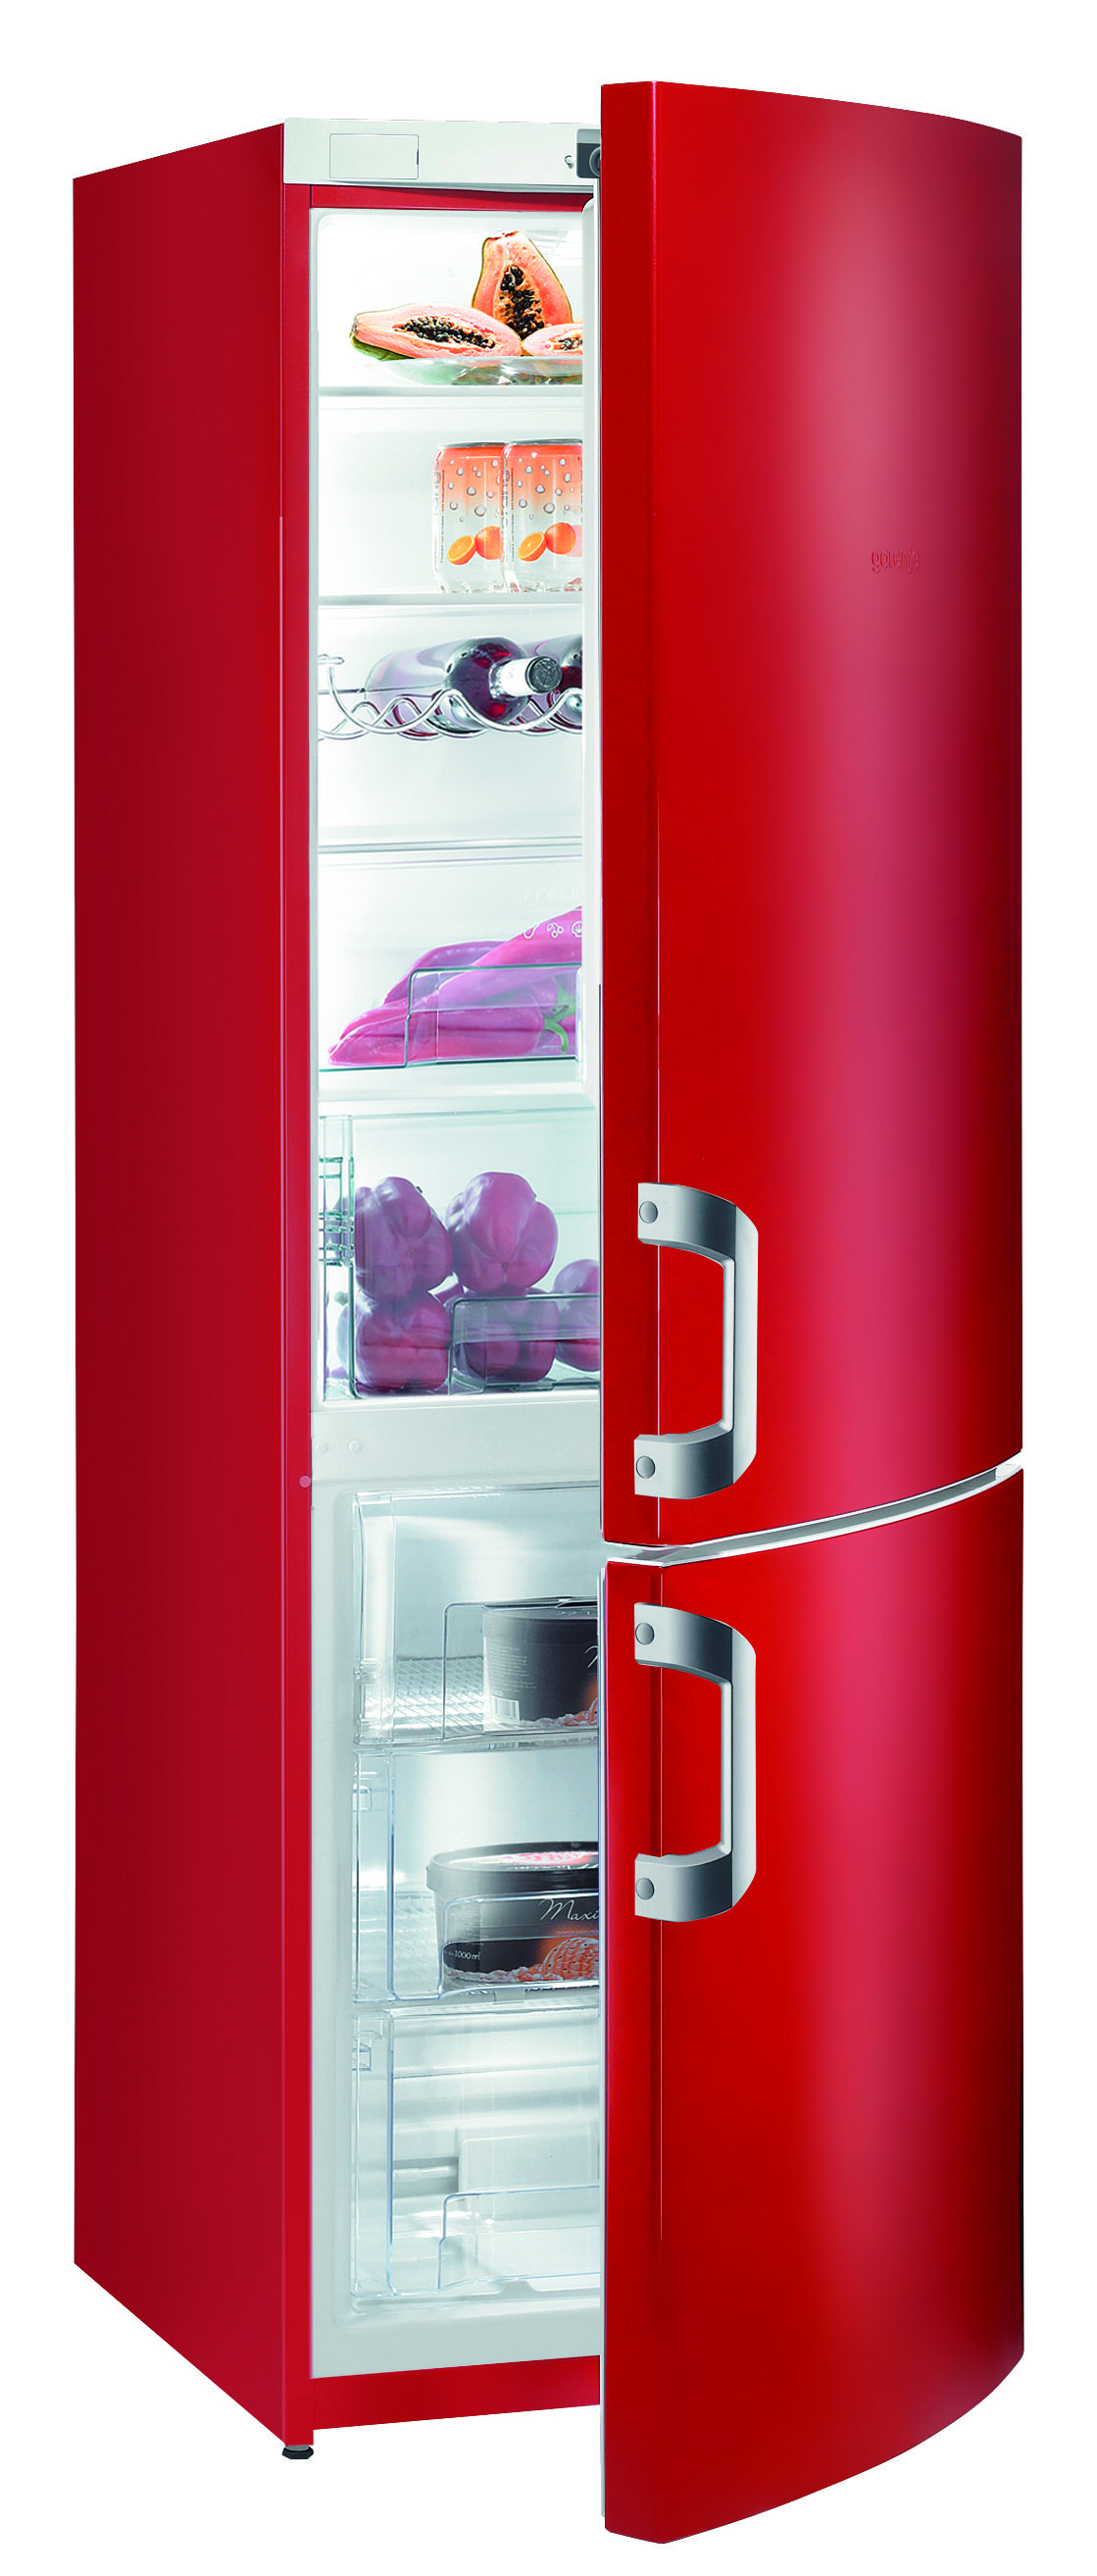 Yellow Fridge Freezer For A Fashionable Kitchen Gorenje Red Fridge Freezer